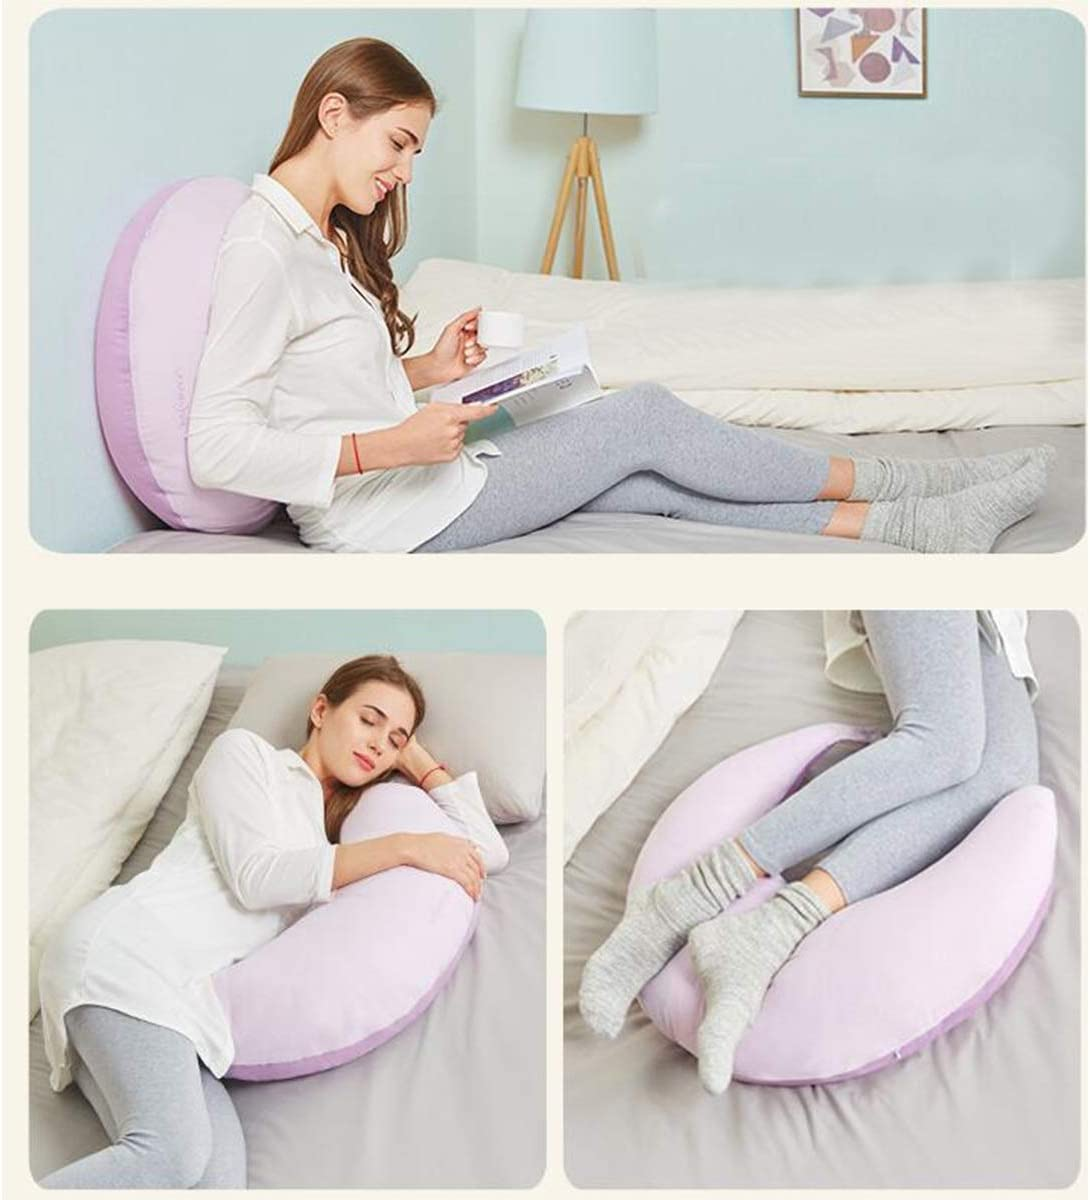 Yuxiong Breastfeeding Pillow, 30° Angle